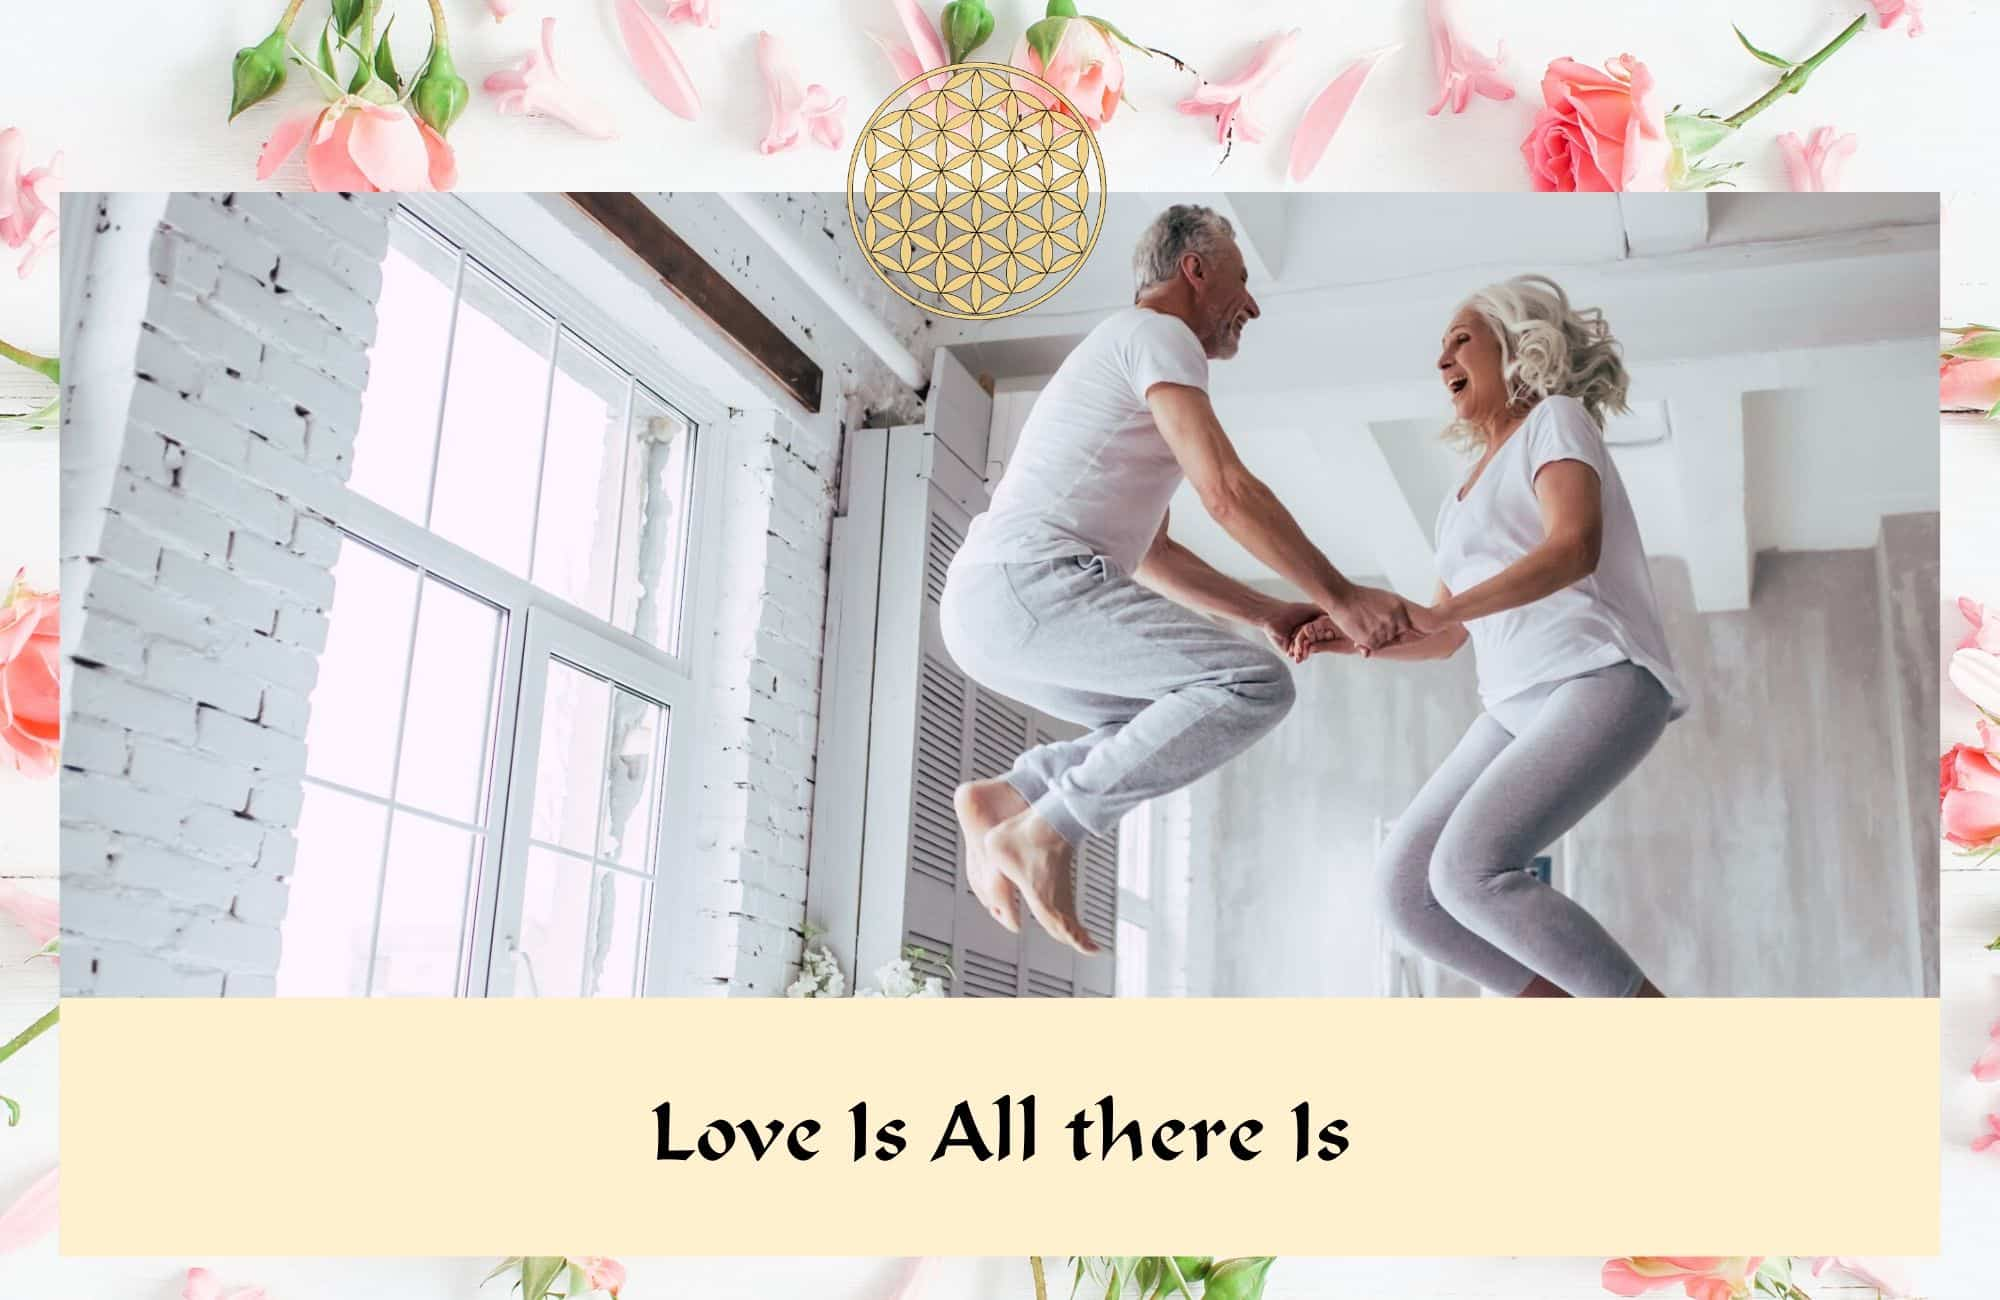 Love is all there is - Flower Essences & Remedies - Flowers for Healing